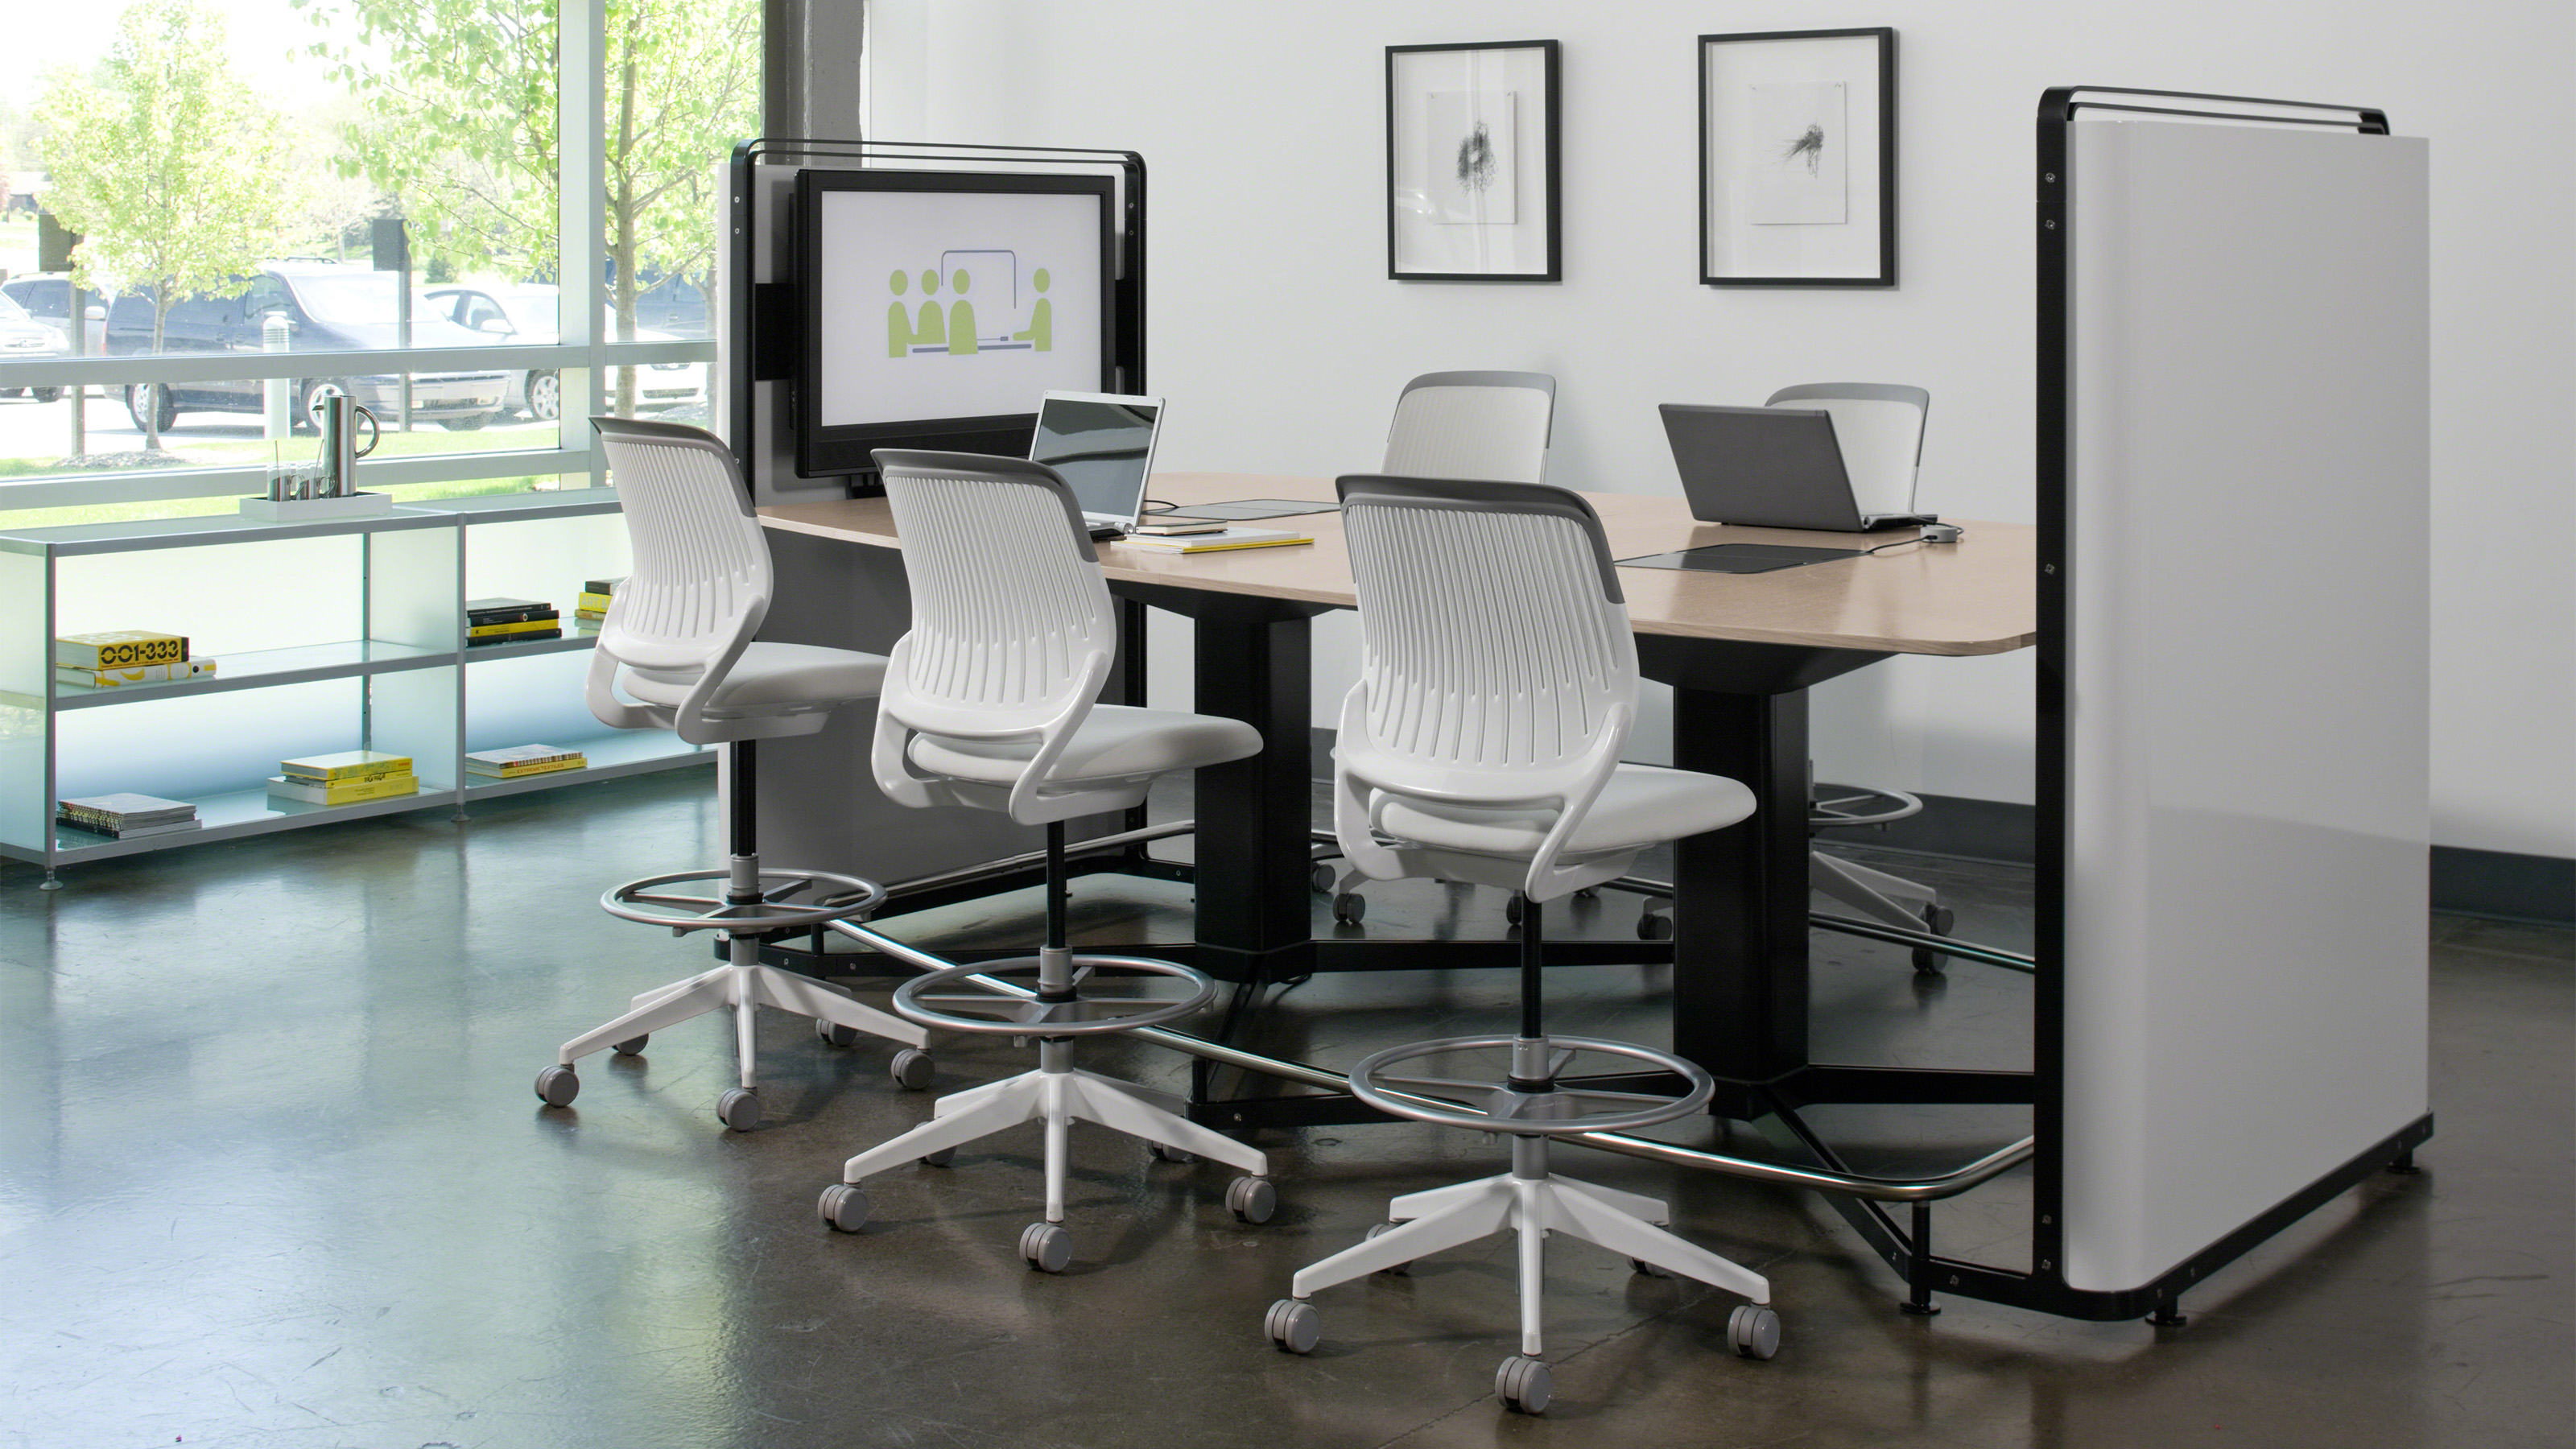 Cobi office chairs collaborative seating steelcase for Chaise design eams